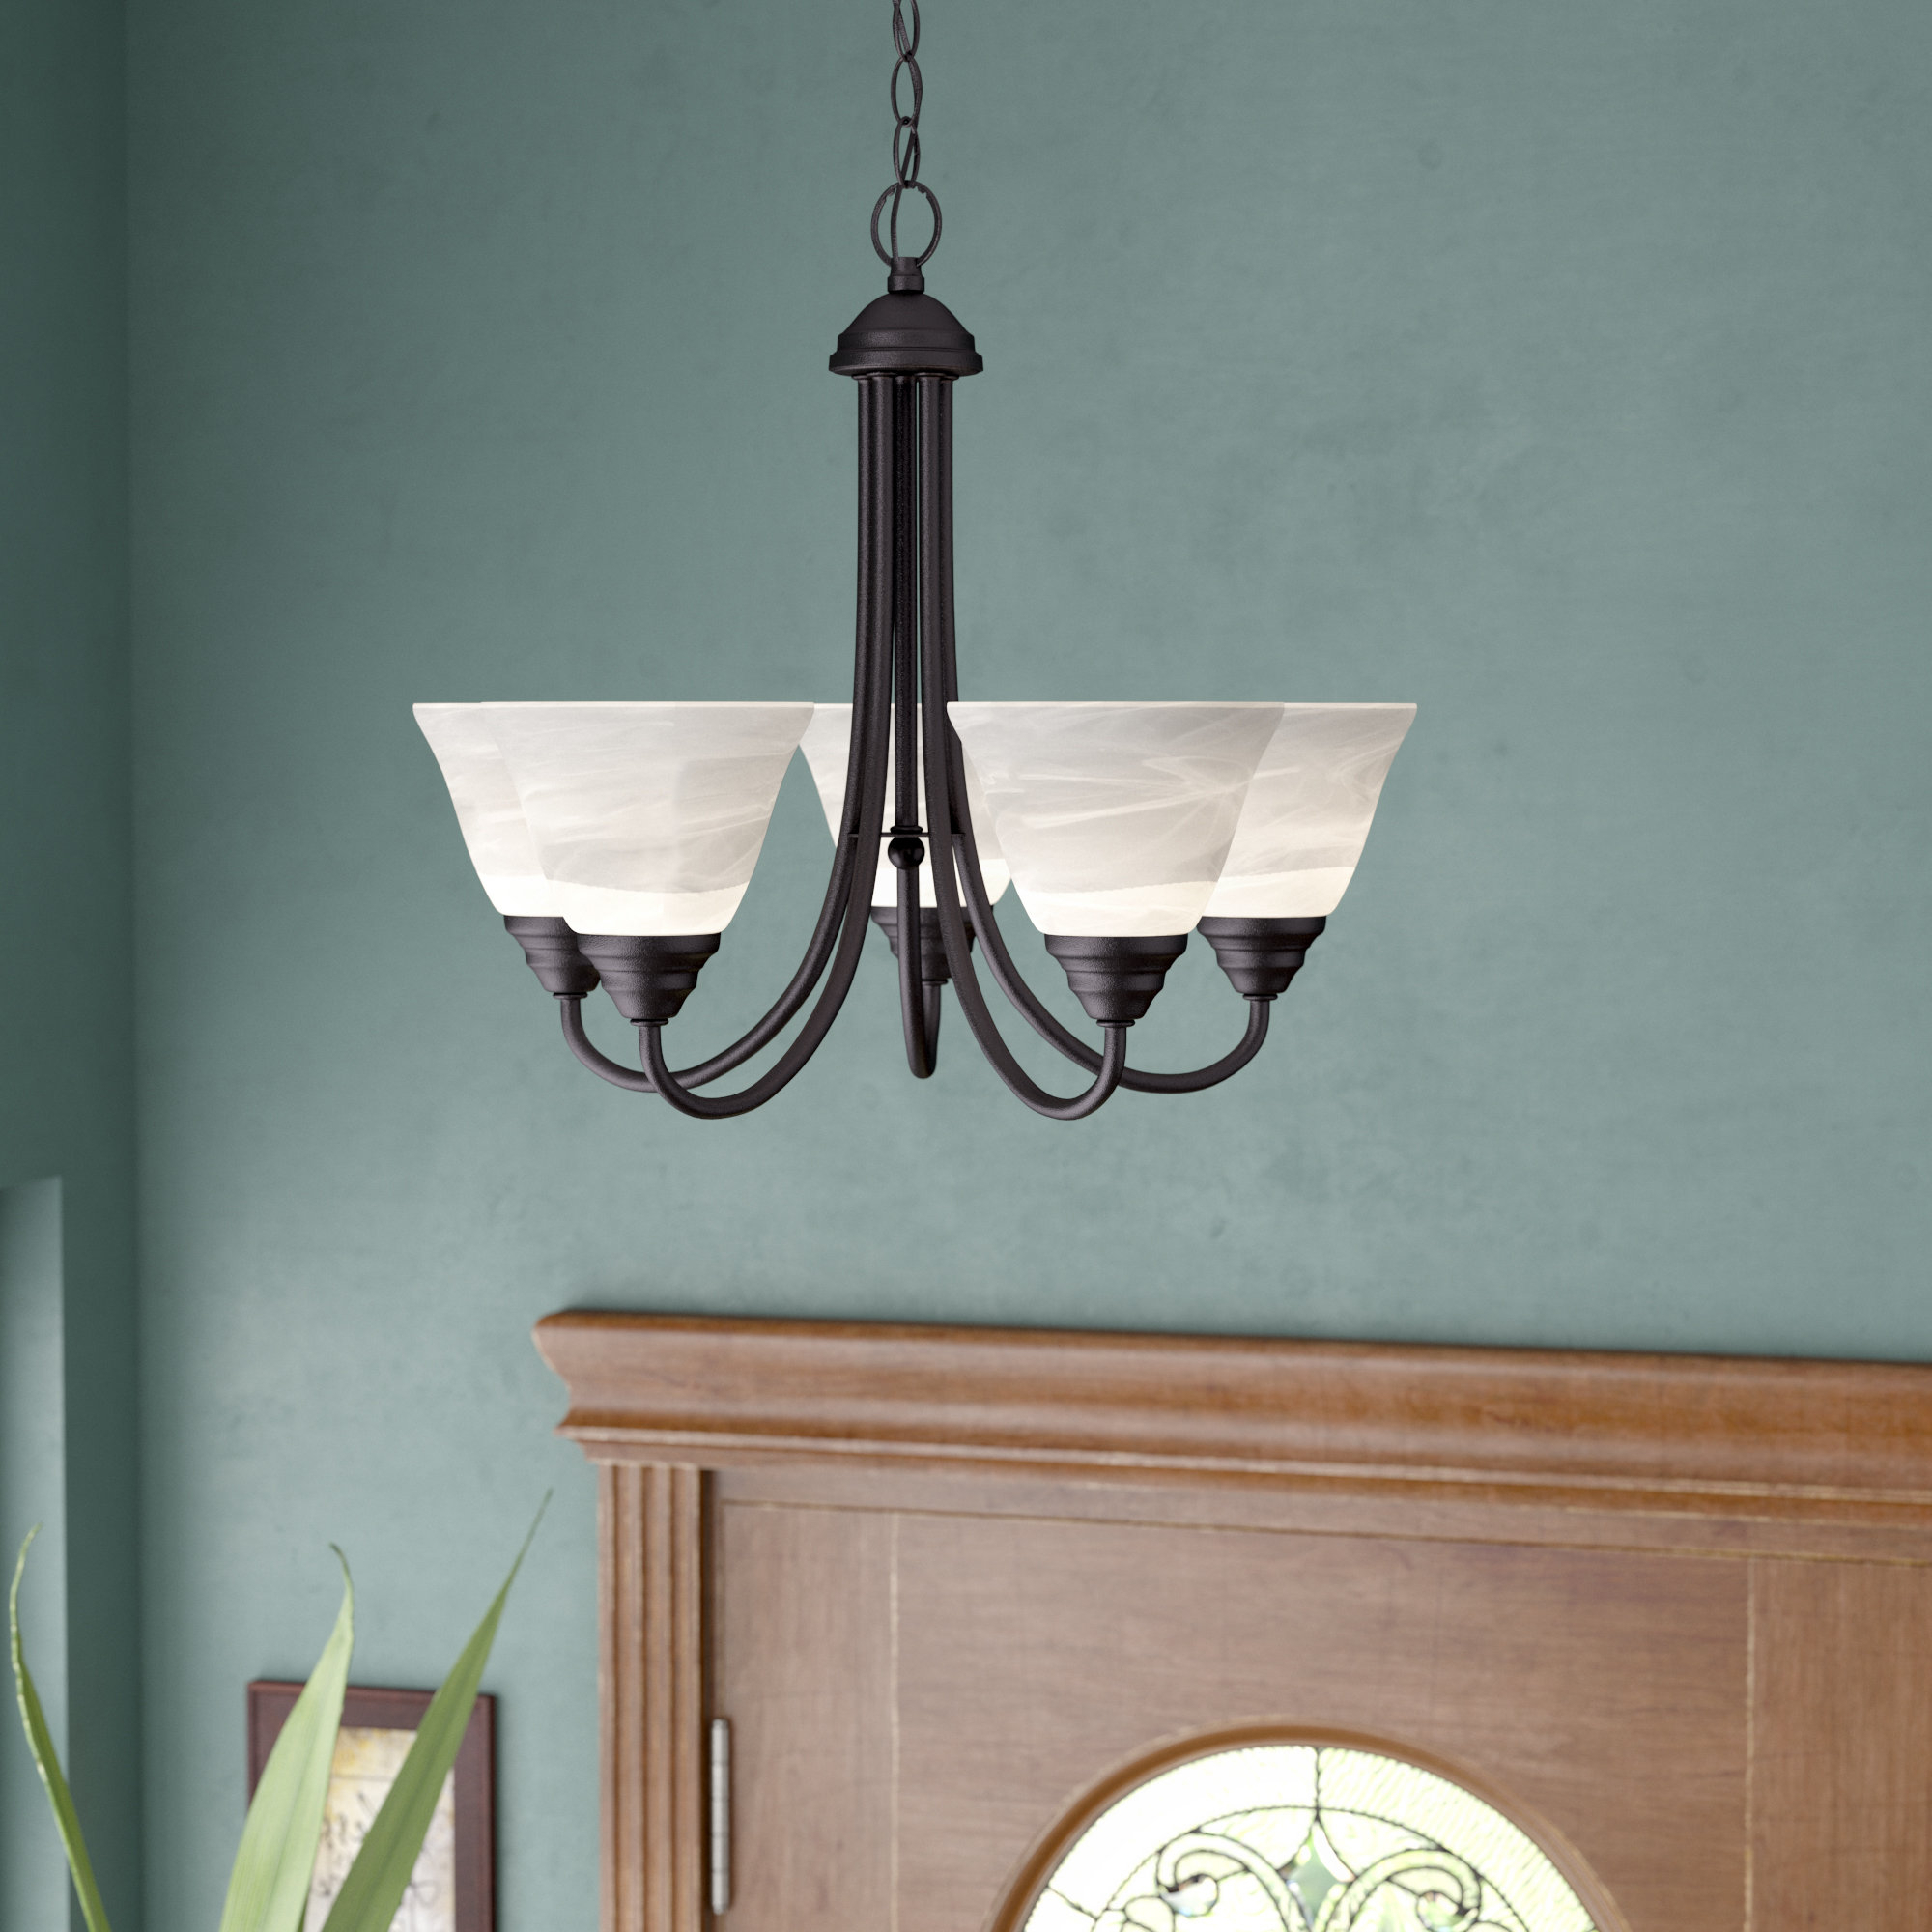 2020 Crofoot 5 Light Shaded Chandeliers With Eichelberger 5 Light Shaded Chandelier (View 3 of 20)